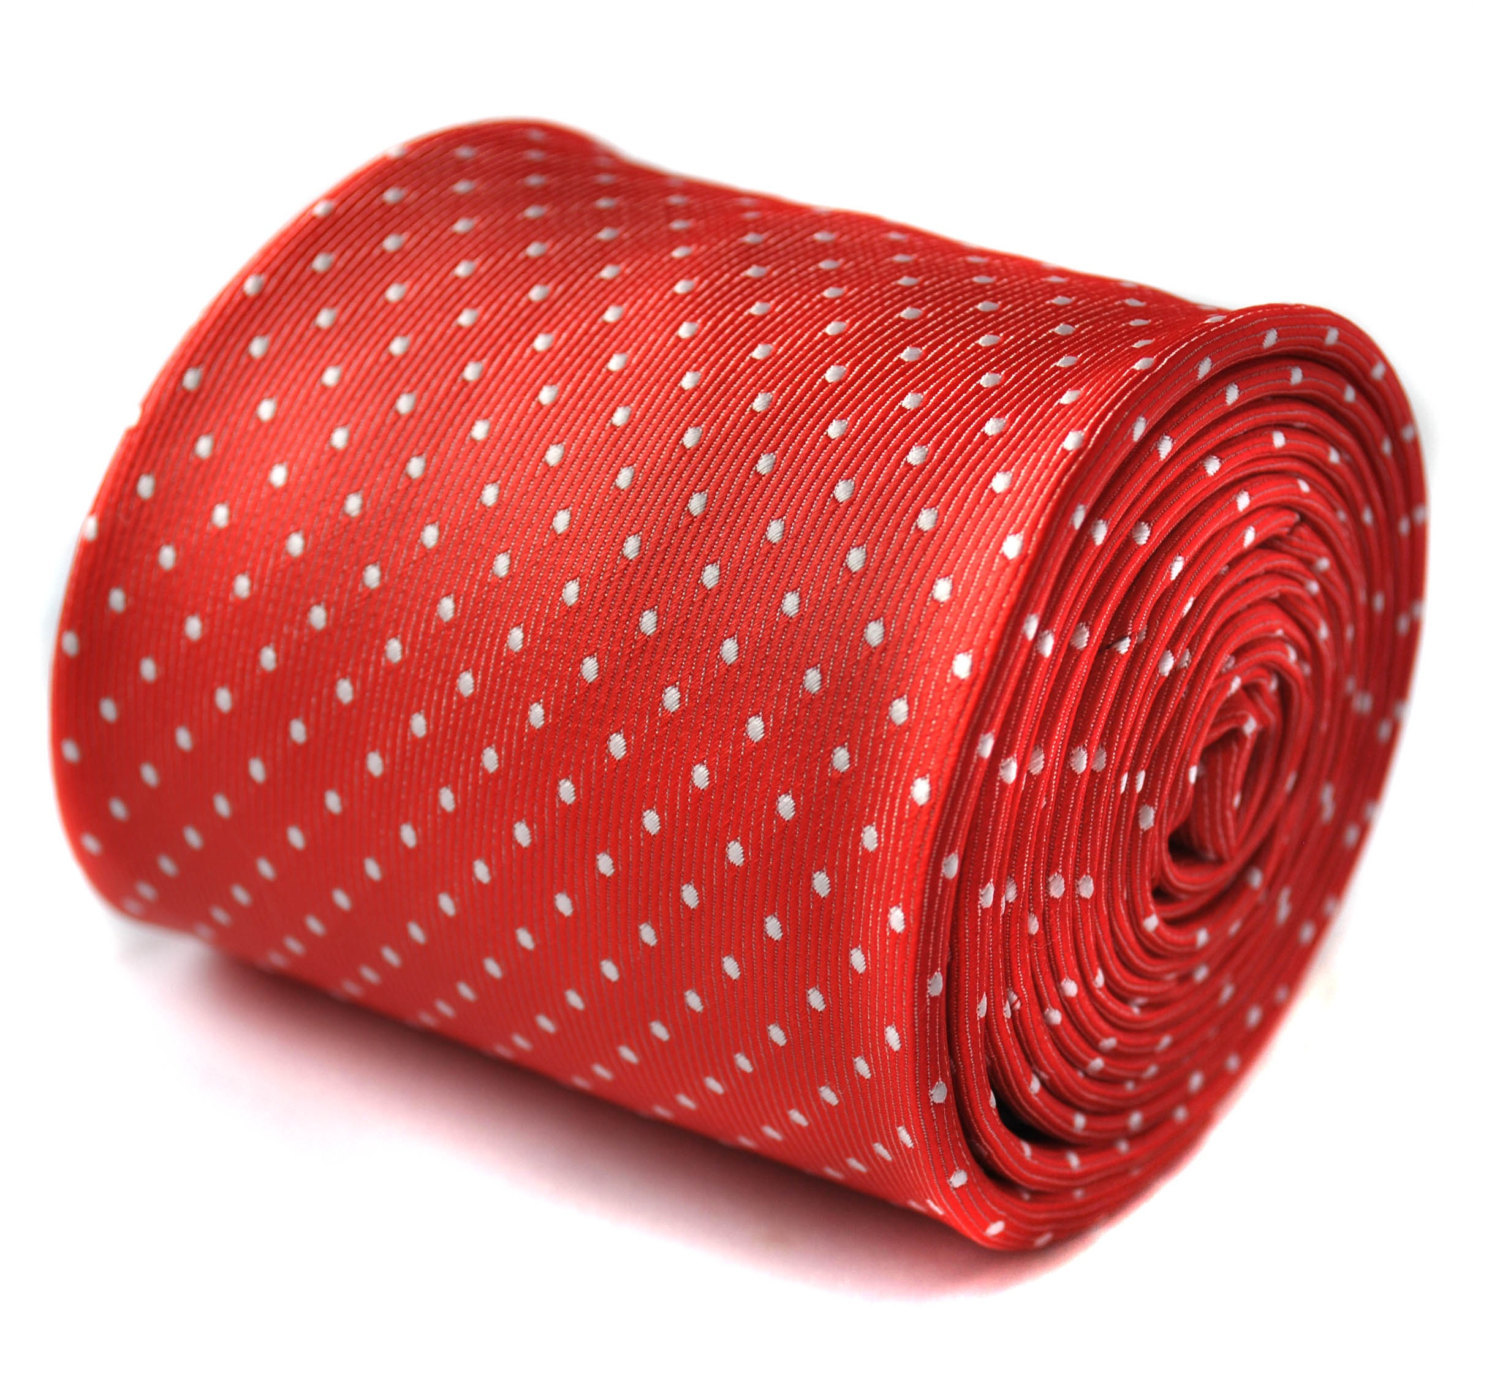 red and white pin spot tie with signature floral design to the rear by Frederick